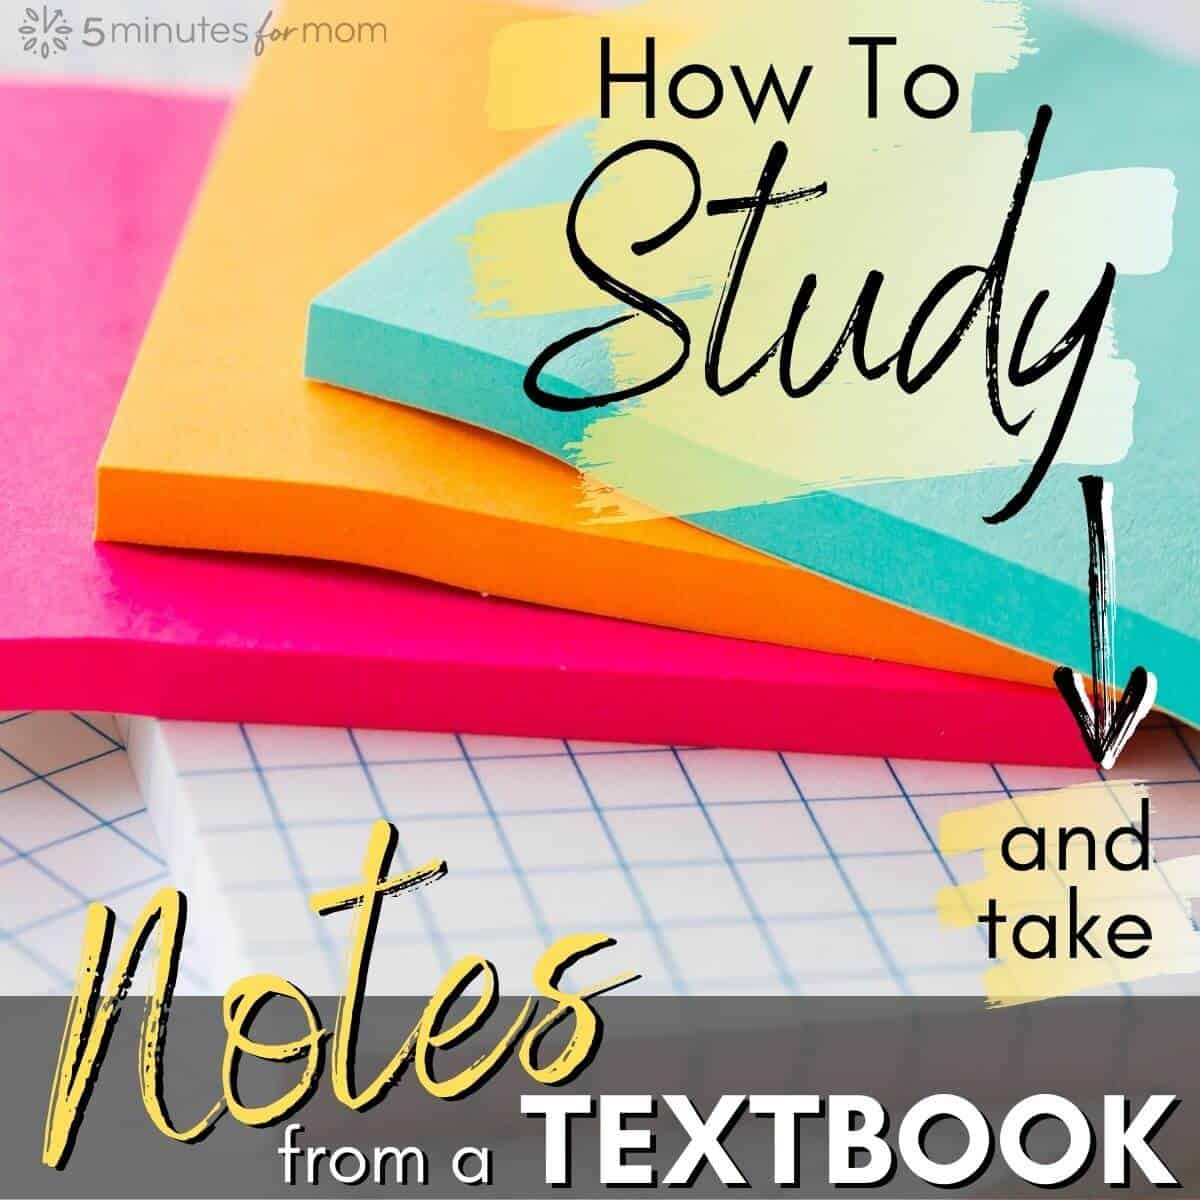 Study Tips - How to take notes from a textbook